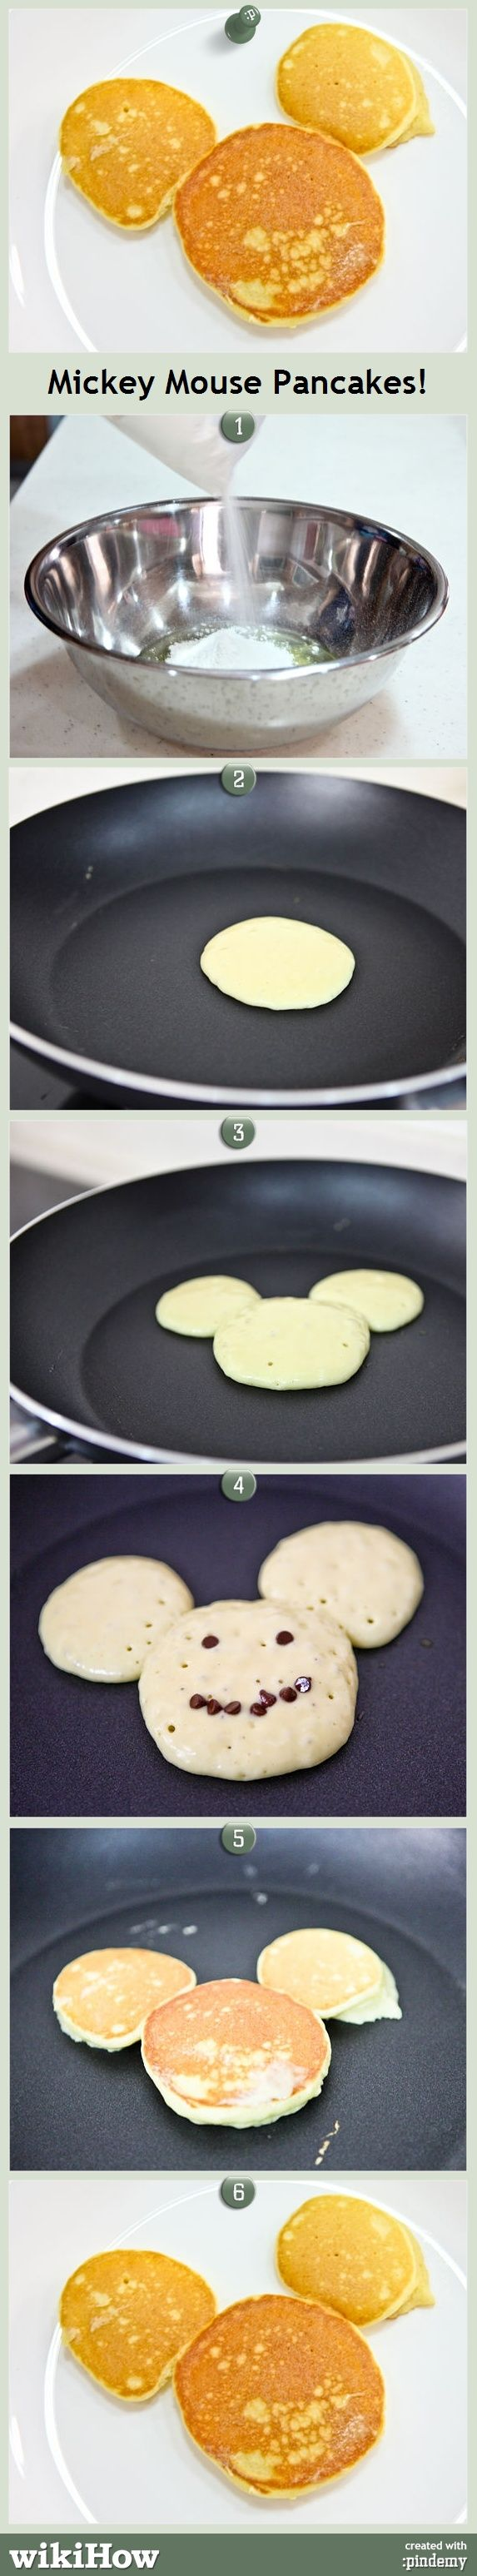 Mickey Mouse Pancakes!